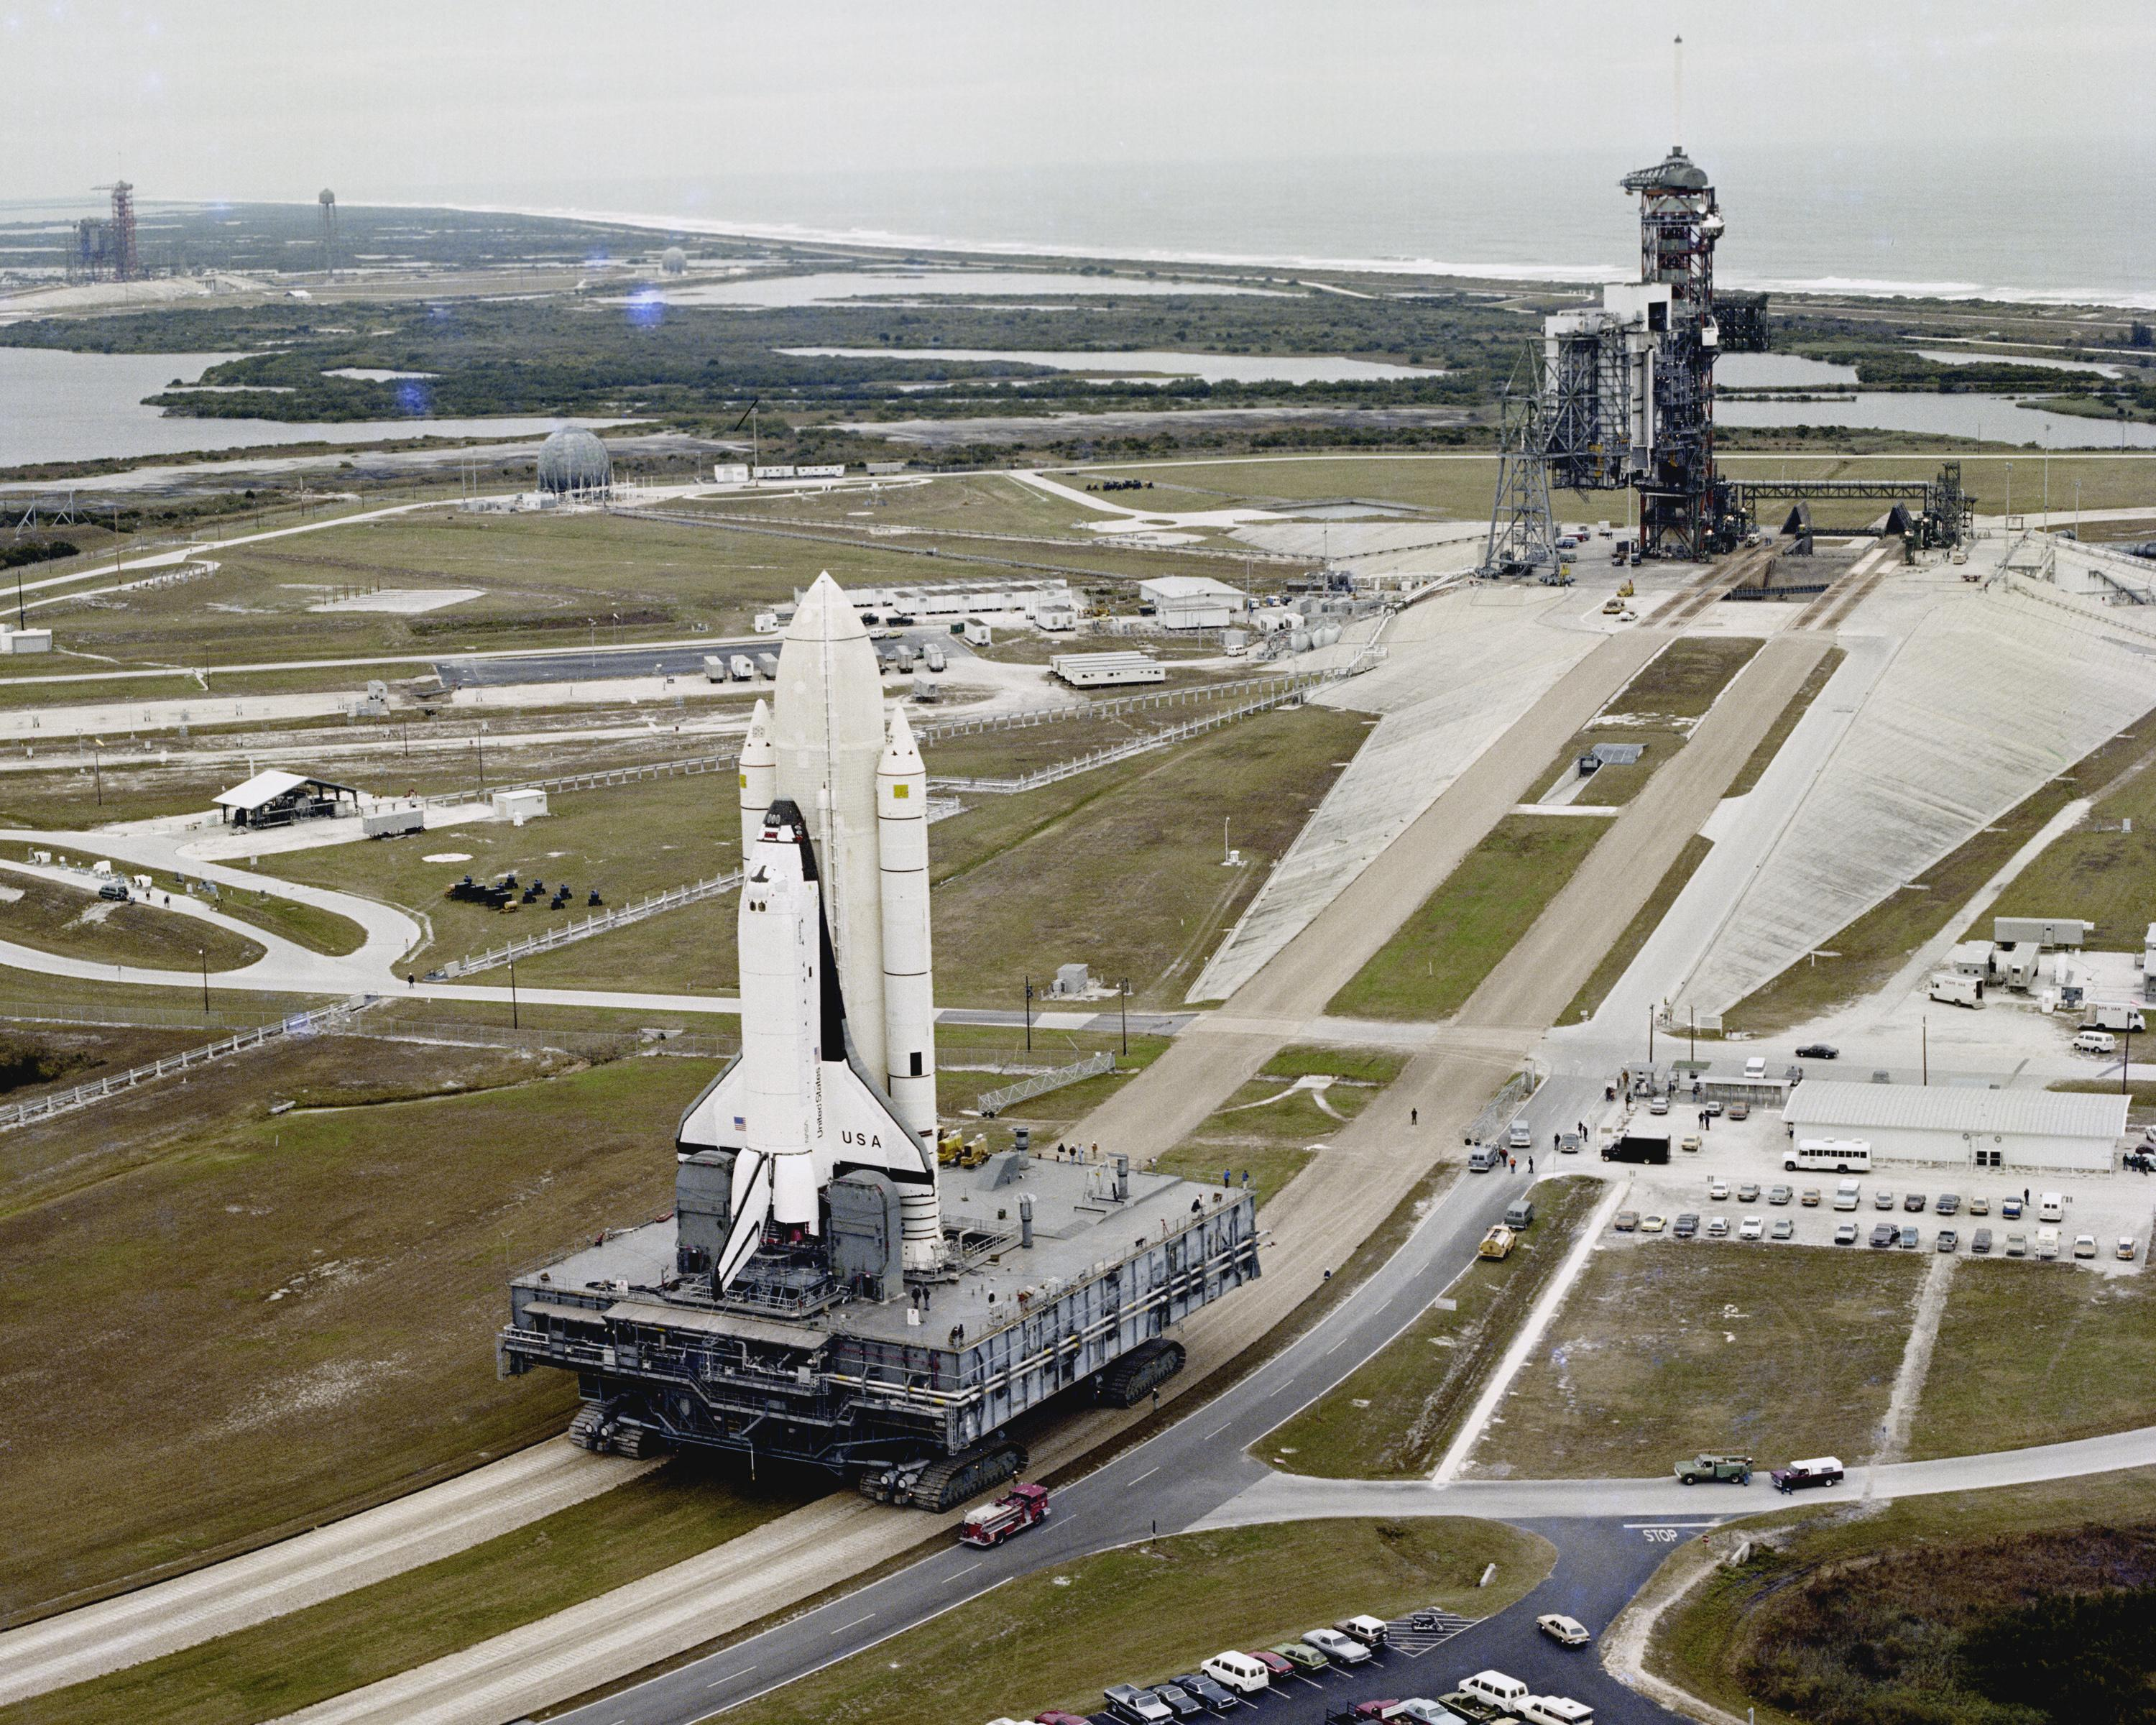 A NASA crawler-transporter moves a shuttle to the launchpad